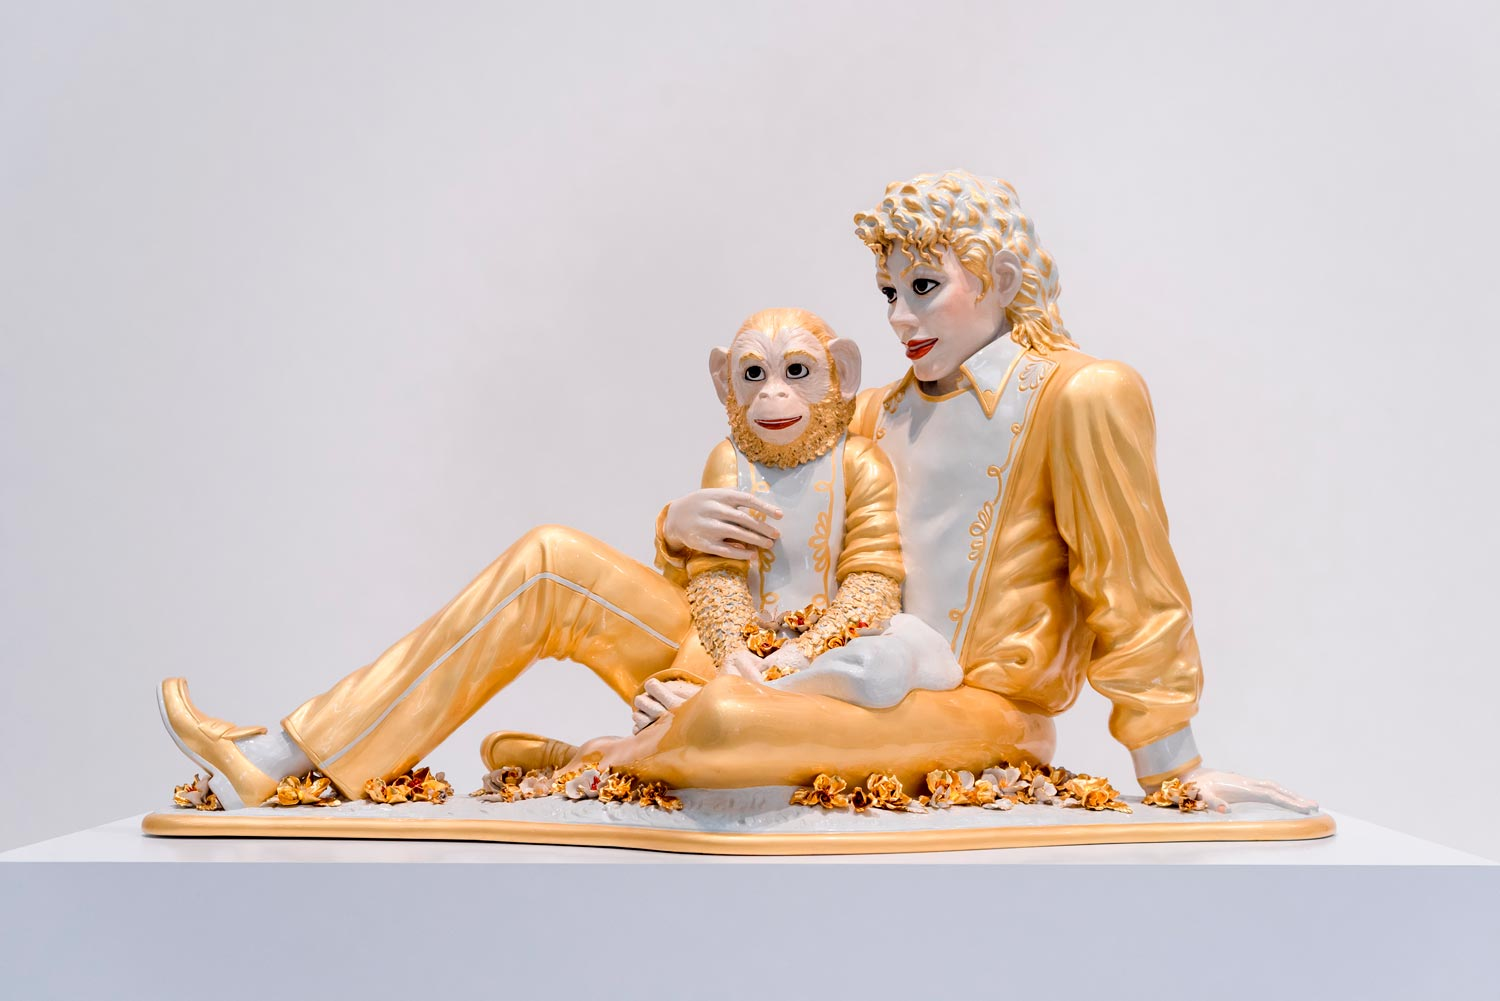 Michael Jackson and Bubbles by Jeff Koons, the most expensive contemporary artist